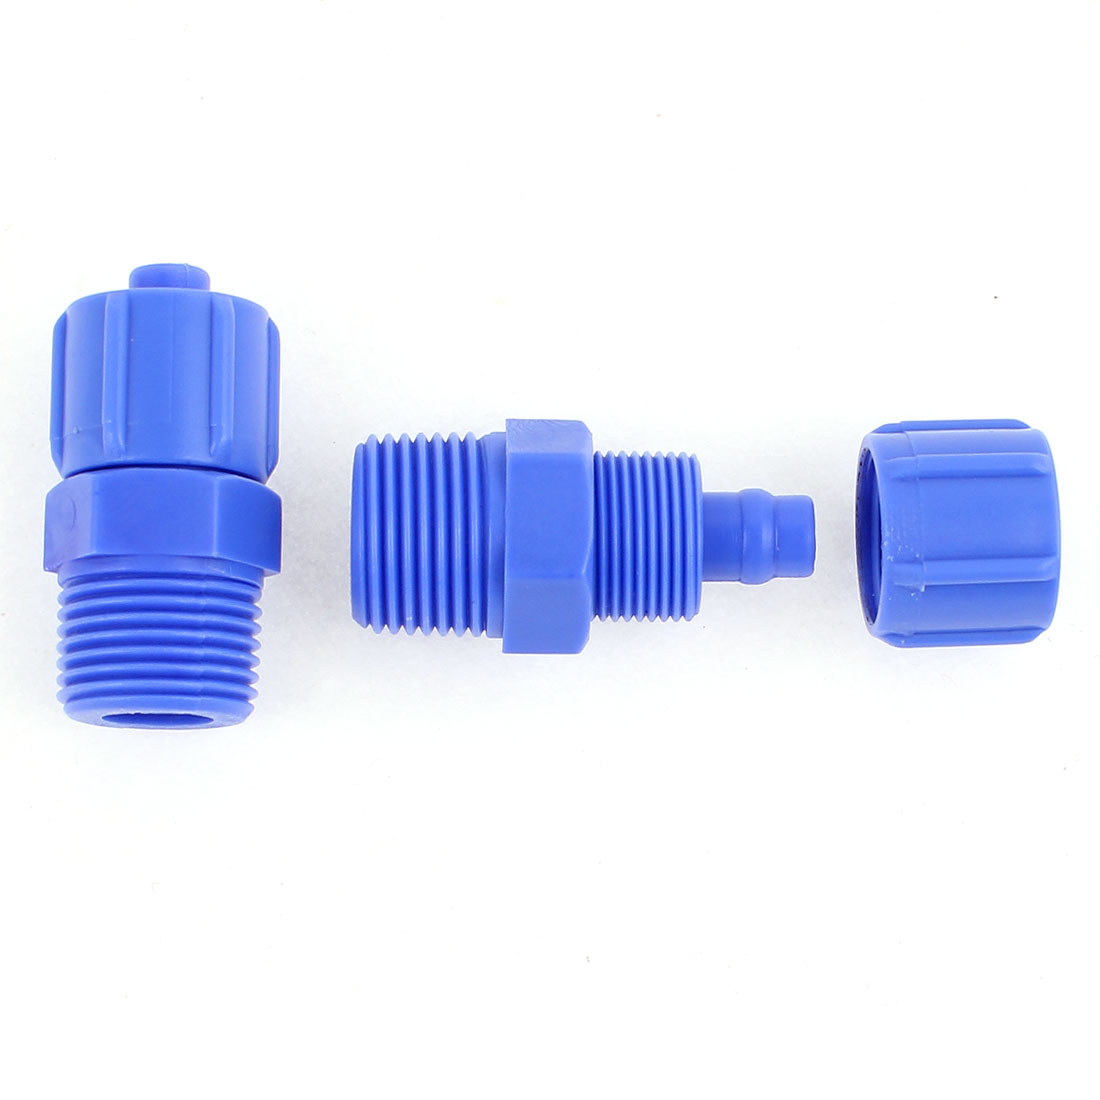 2Pcs 3/8BSP Male Pneumatic Quick Fitting Hose Pipe Tube Connector 10mm OD